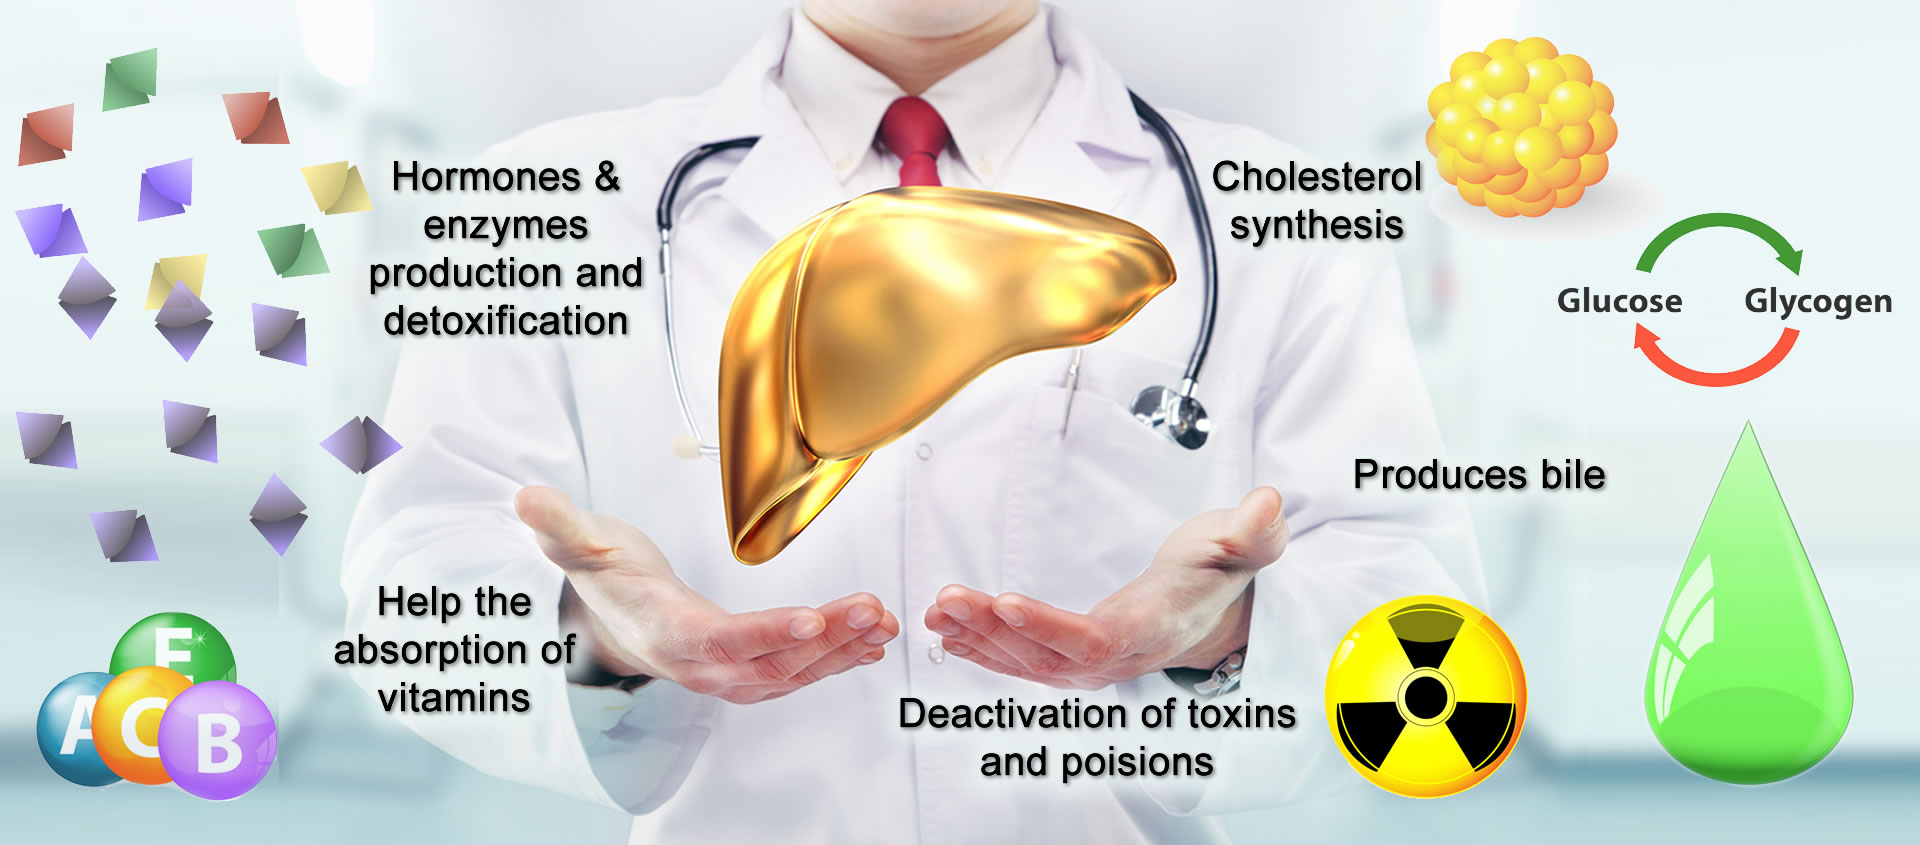 What Does The Liver Do And Why Is It So Important? - Buy Synthergine ...